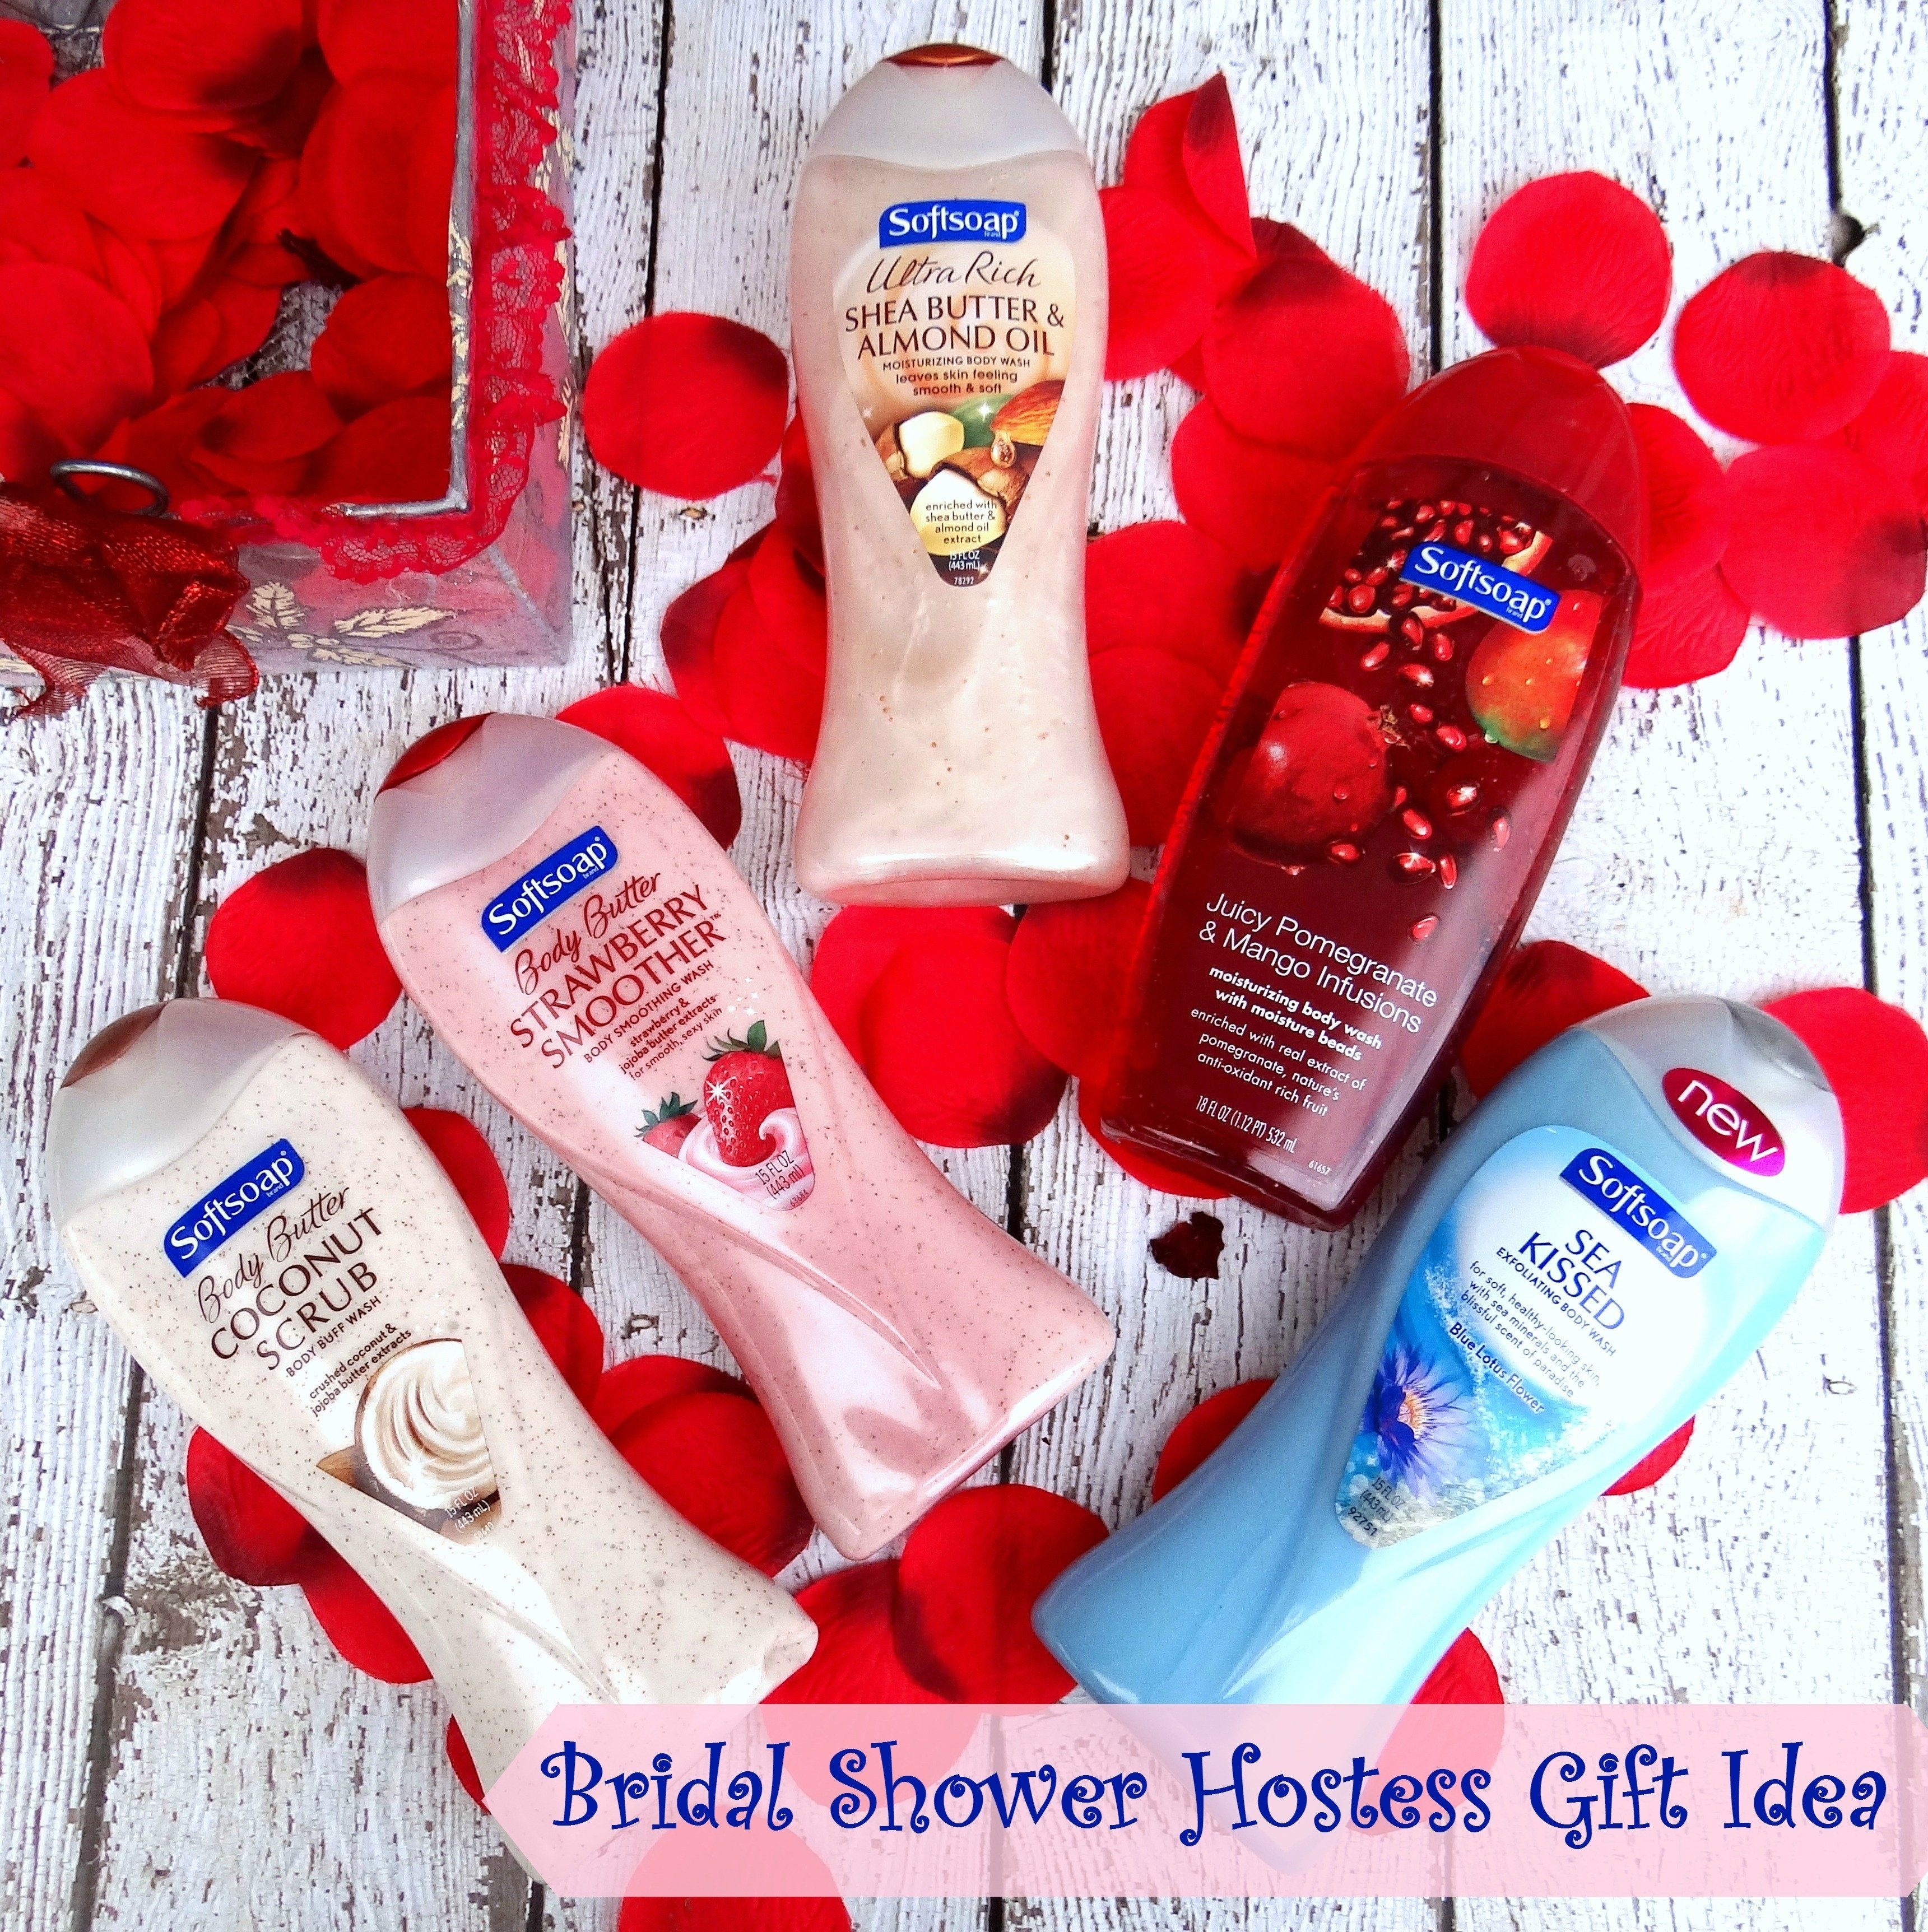 10 Famous Bridal Shower Hostess Gift Ideas how to have a fantastic wedding shower hostess gifts with minimal 1 2020